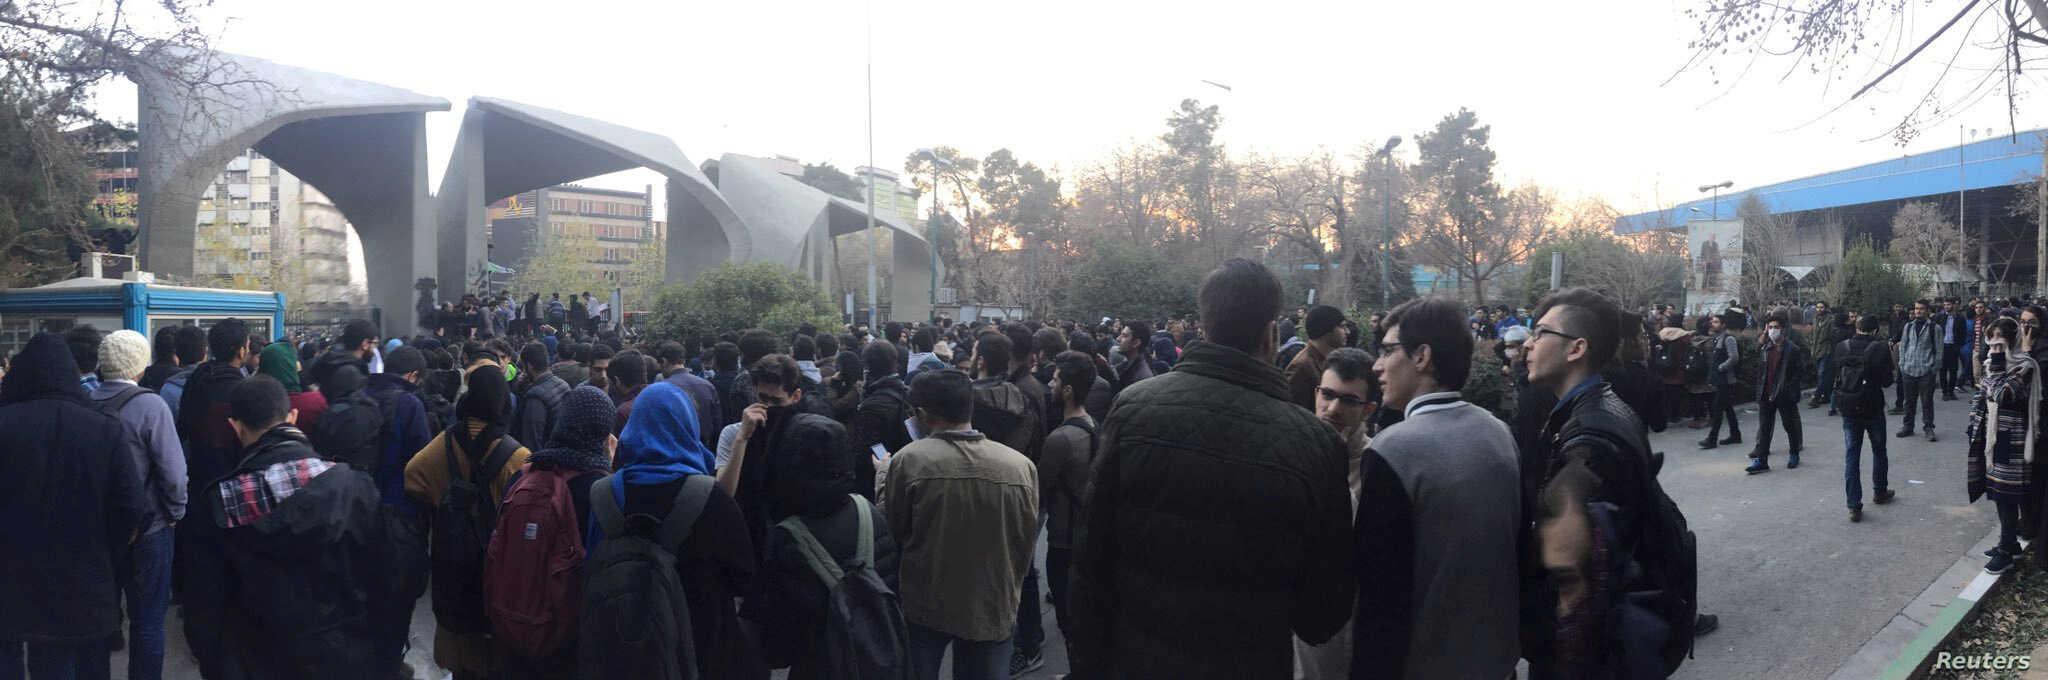 People protest near the university of Tehran, Iran, Dec. 30, 2017 in this picture obtained from social media.